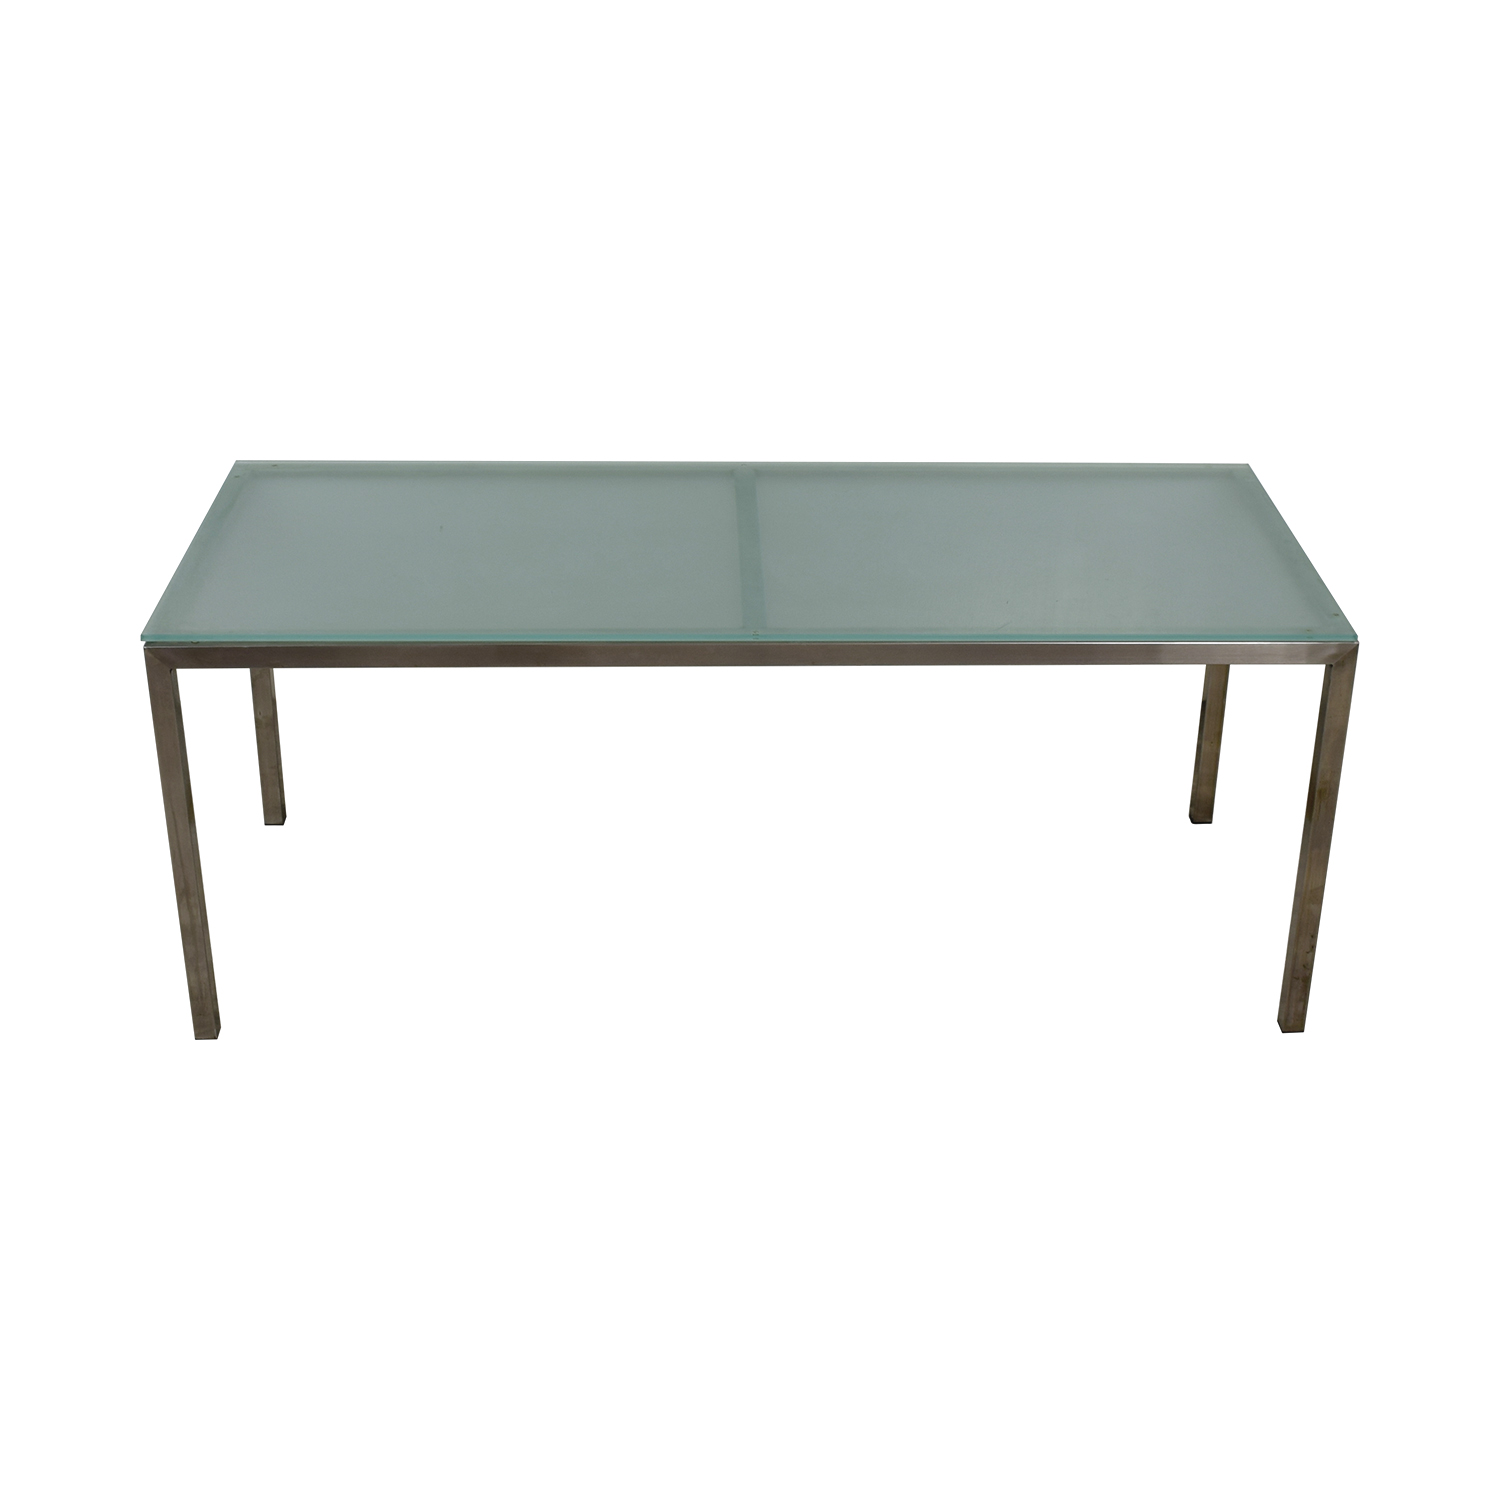 buy Room & Board Portica Custom Brushed Steel and Frosted Glass Table Room & Board